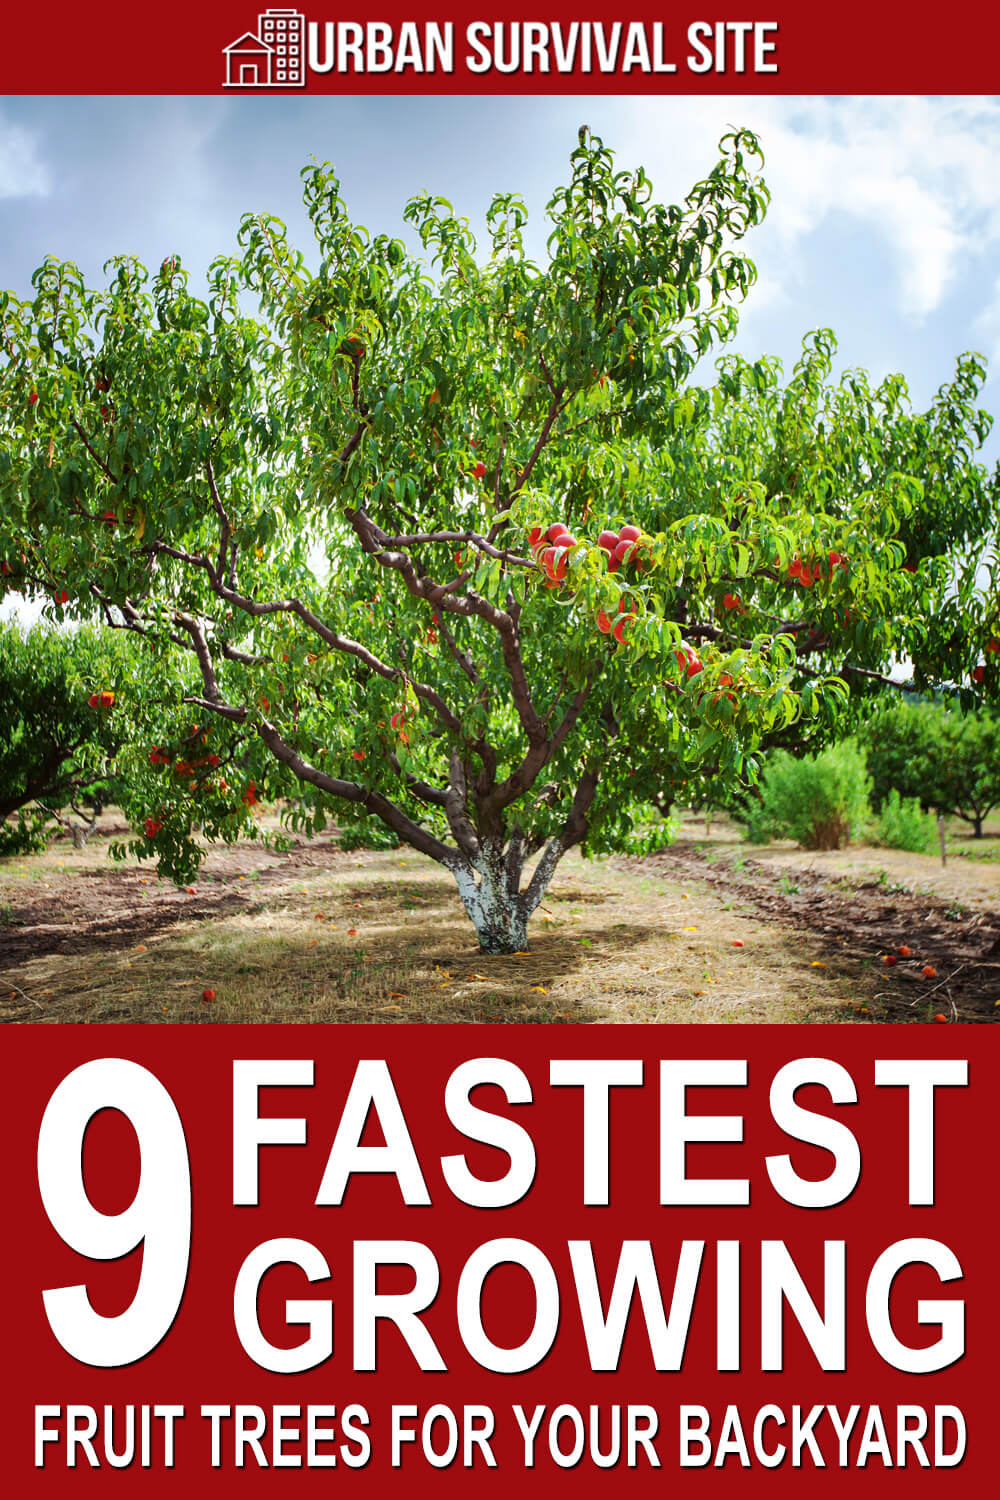 9 Fastest Growing Fruit Trees for Your Backyard